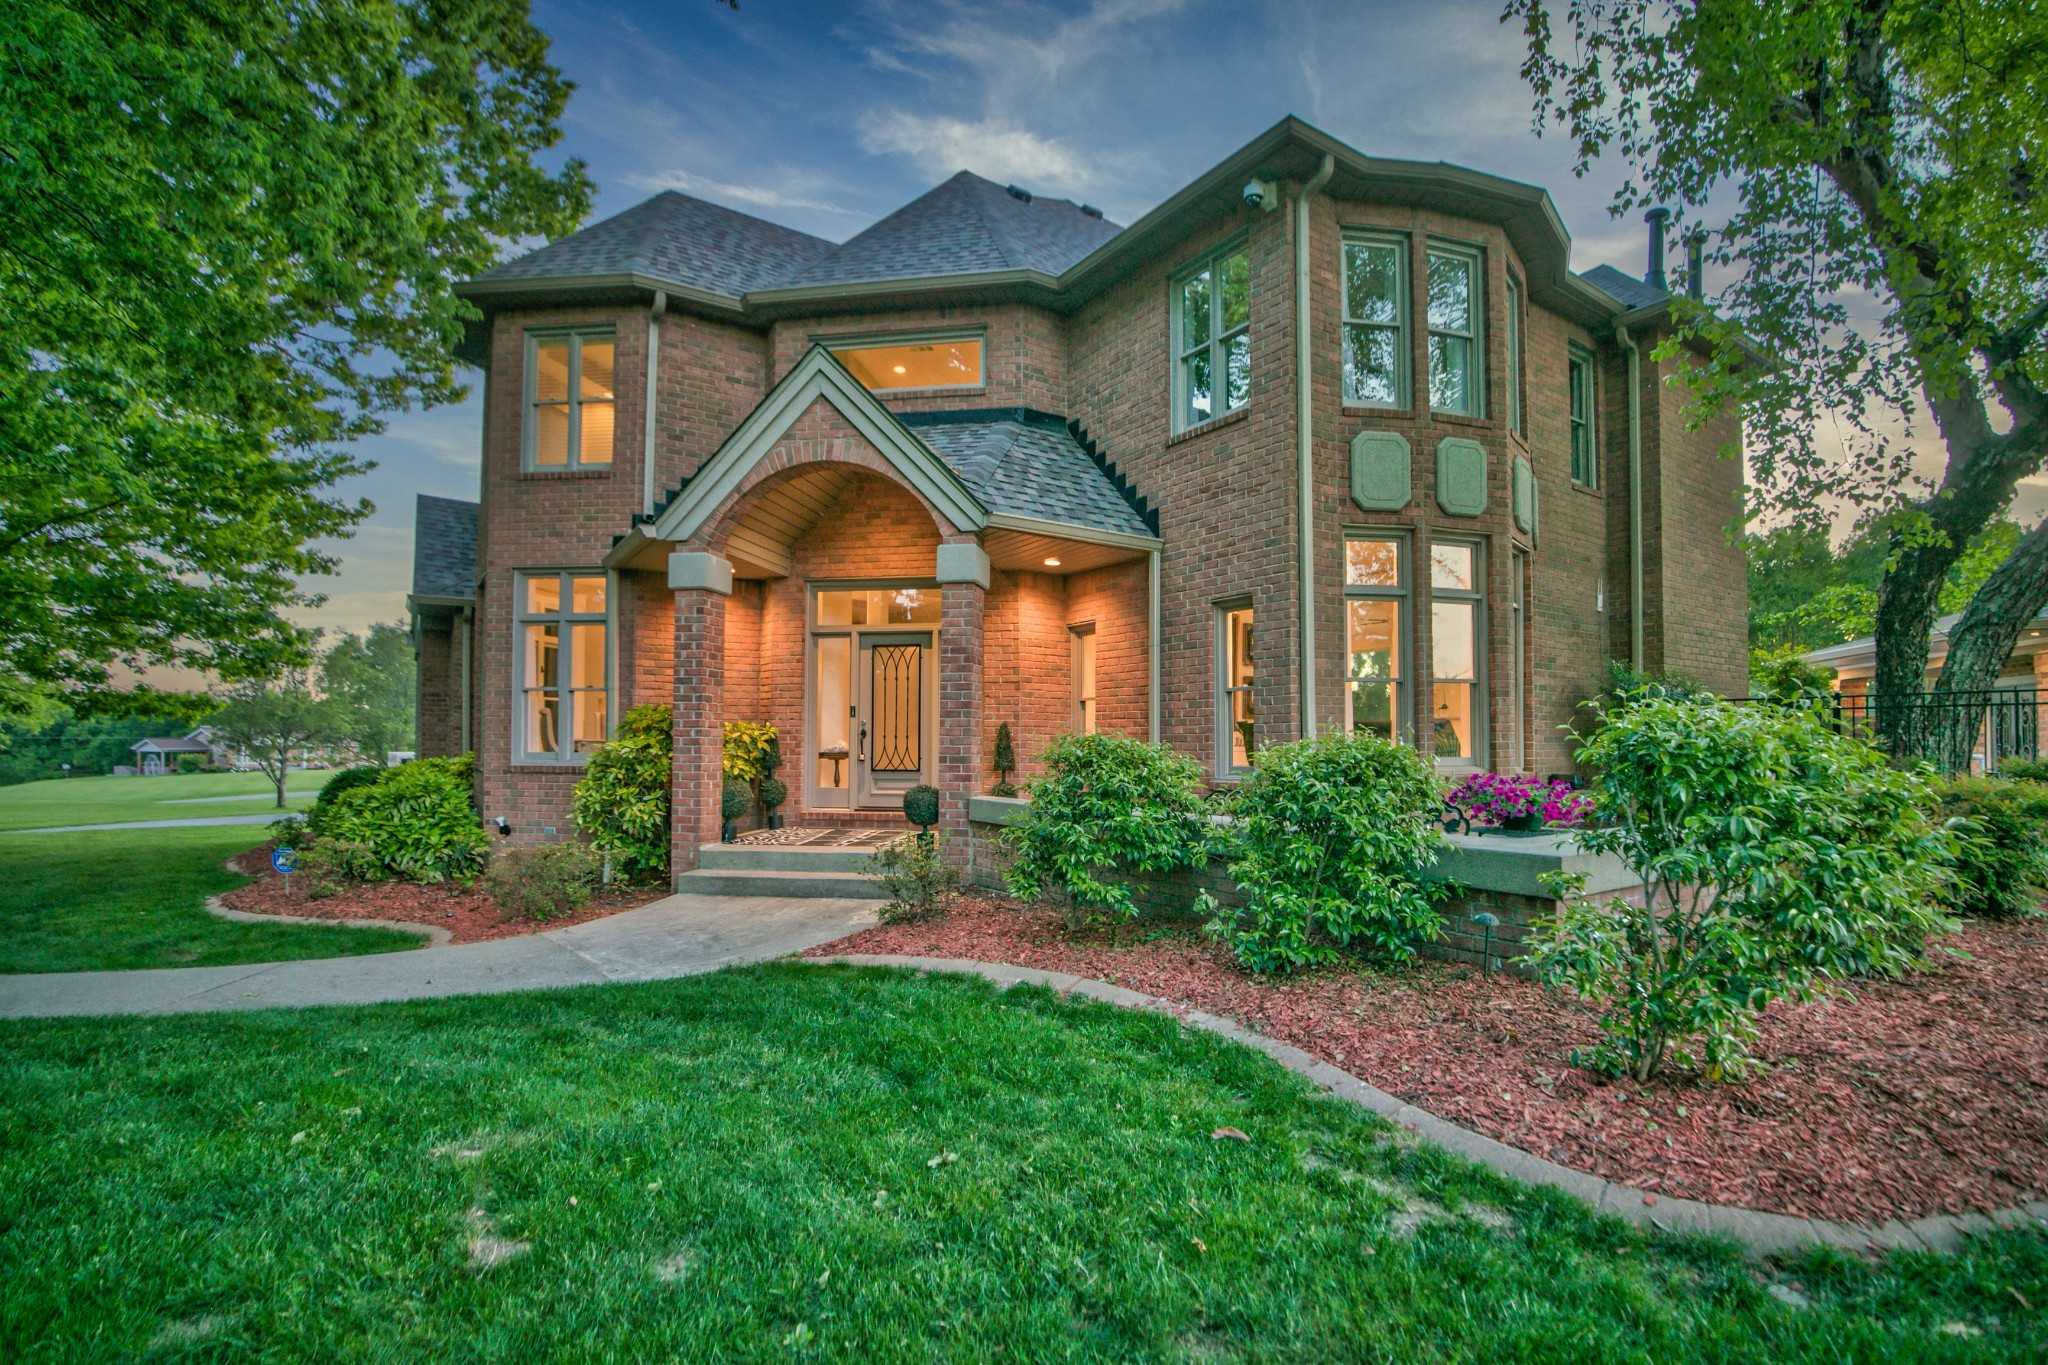 $2,490,000 - 4Br/6Ba -  for Sale in Palmer West, Lebanon